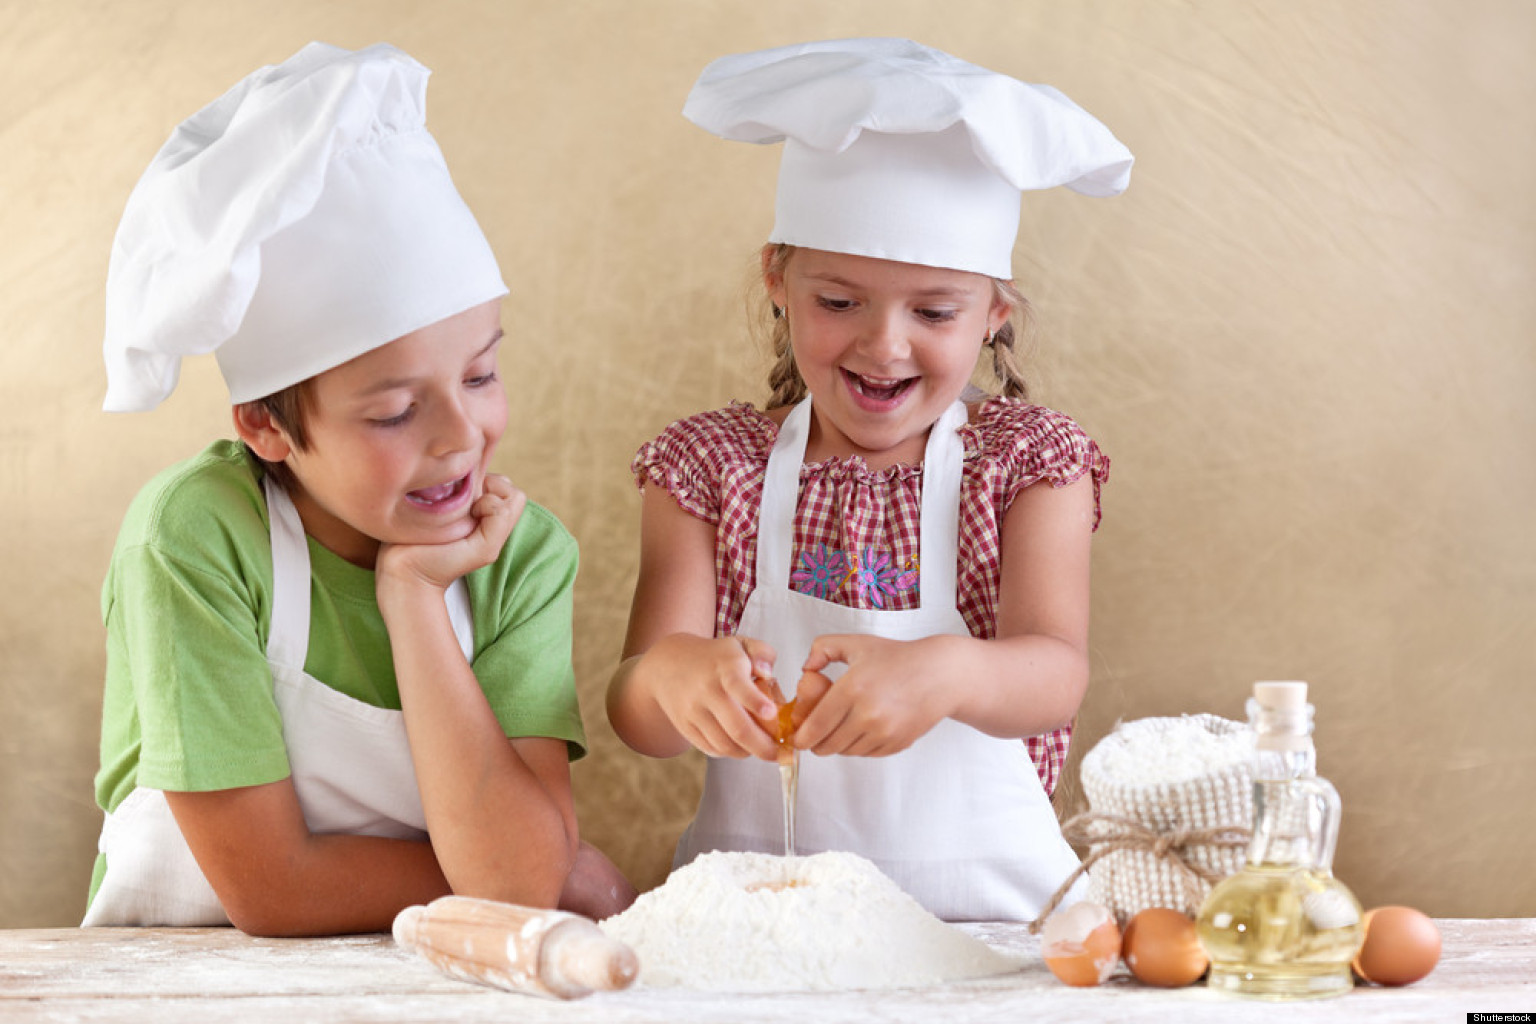 Kochen Für Kinder Cooking For Kids Never Too Early To Teach Kids To Cook